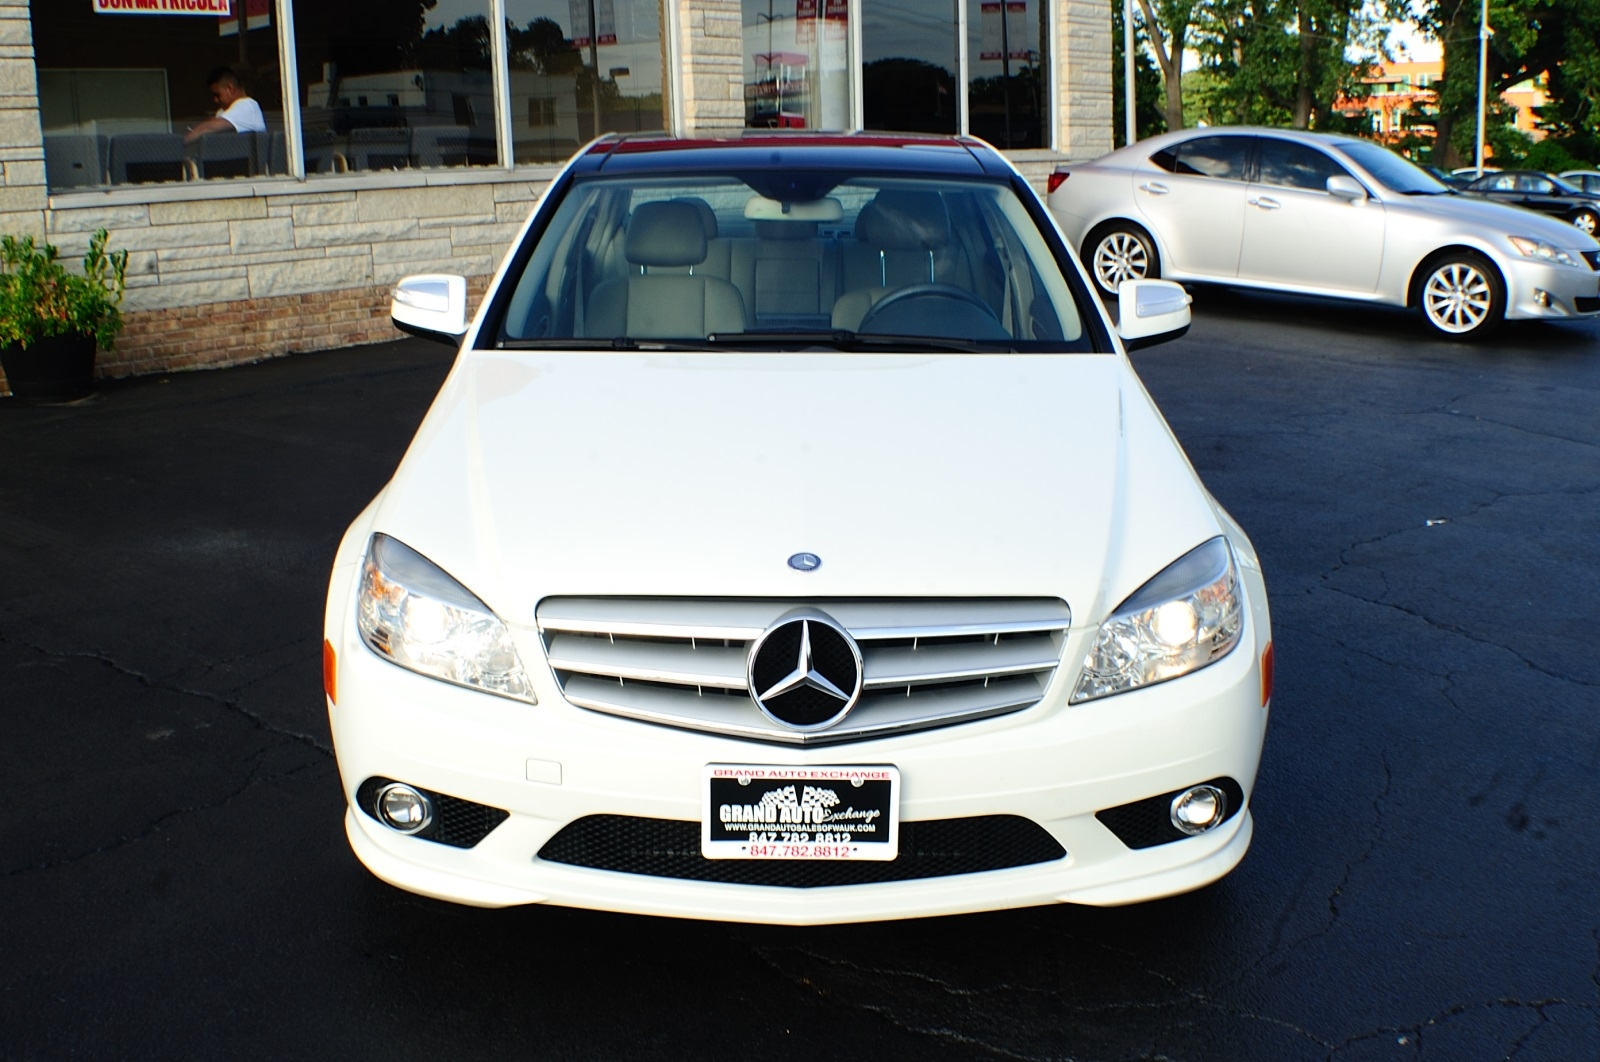 2010 Mercedes Benz C300 4Matic AWD White Sport Sedan sale Gurnee Kenosha Mchenry Chicago Illinois